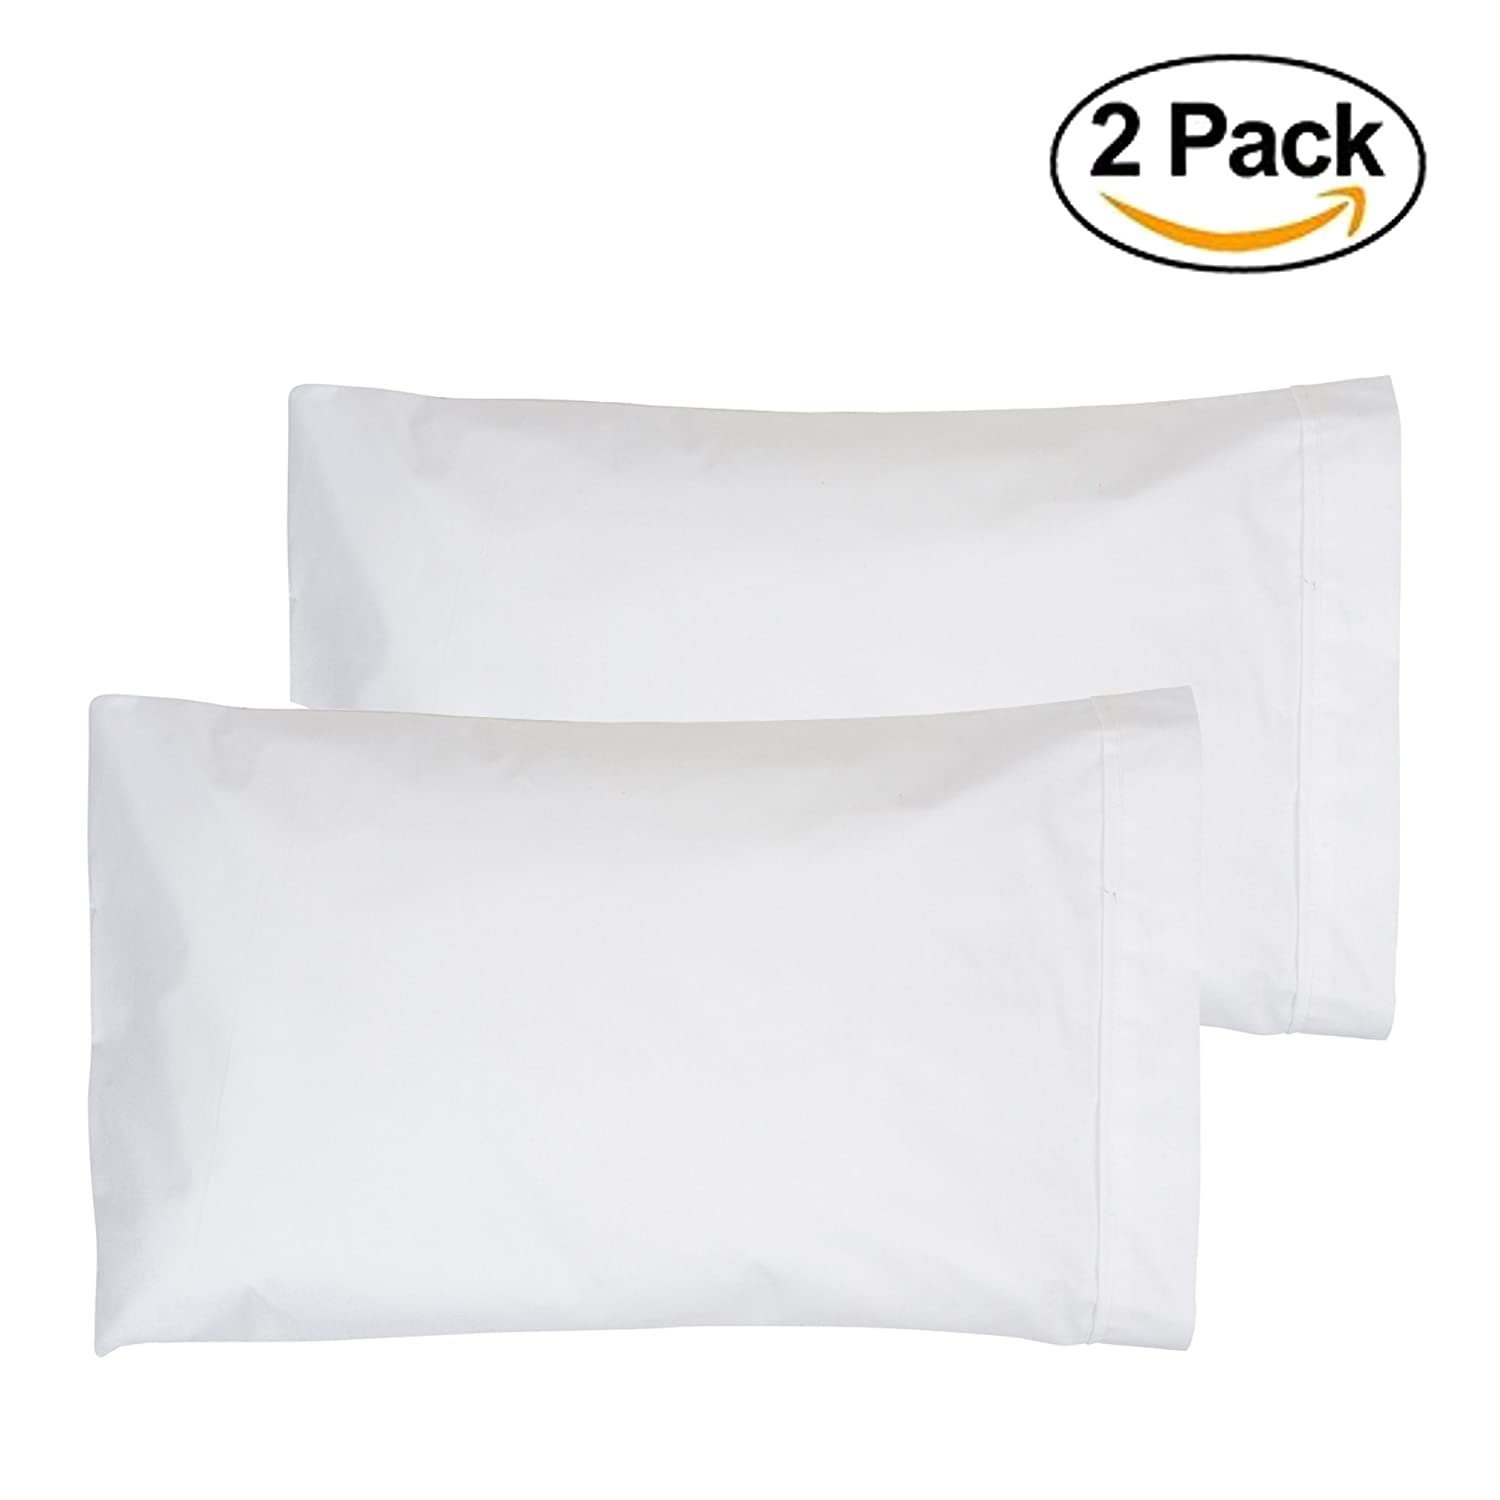 Toddler Pillowcase 13x18 White 2-Pack - Made in USA Angel Dreams